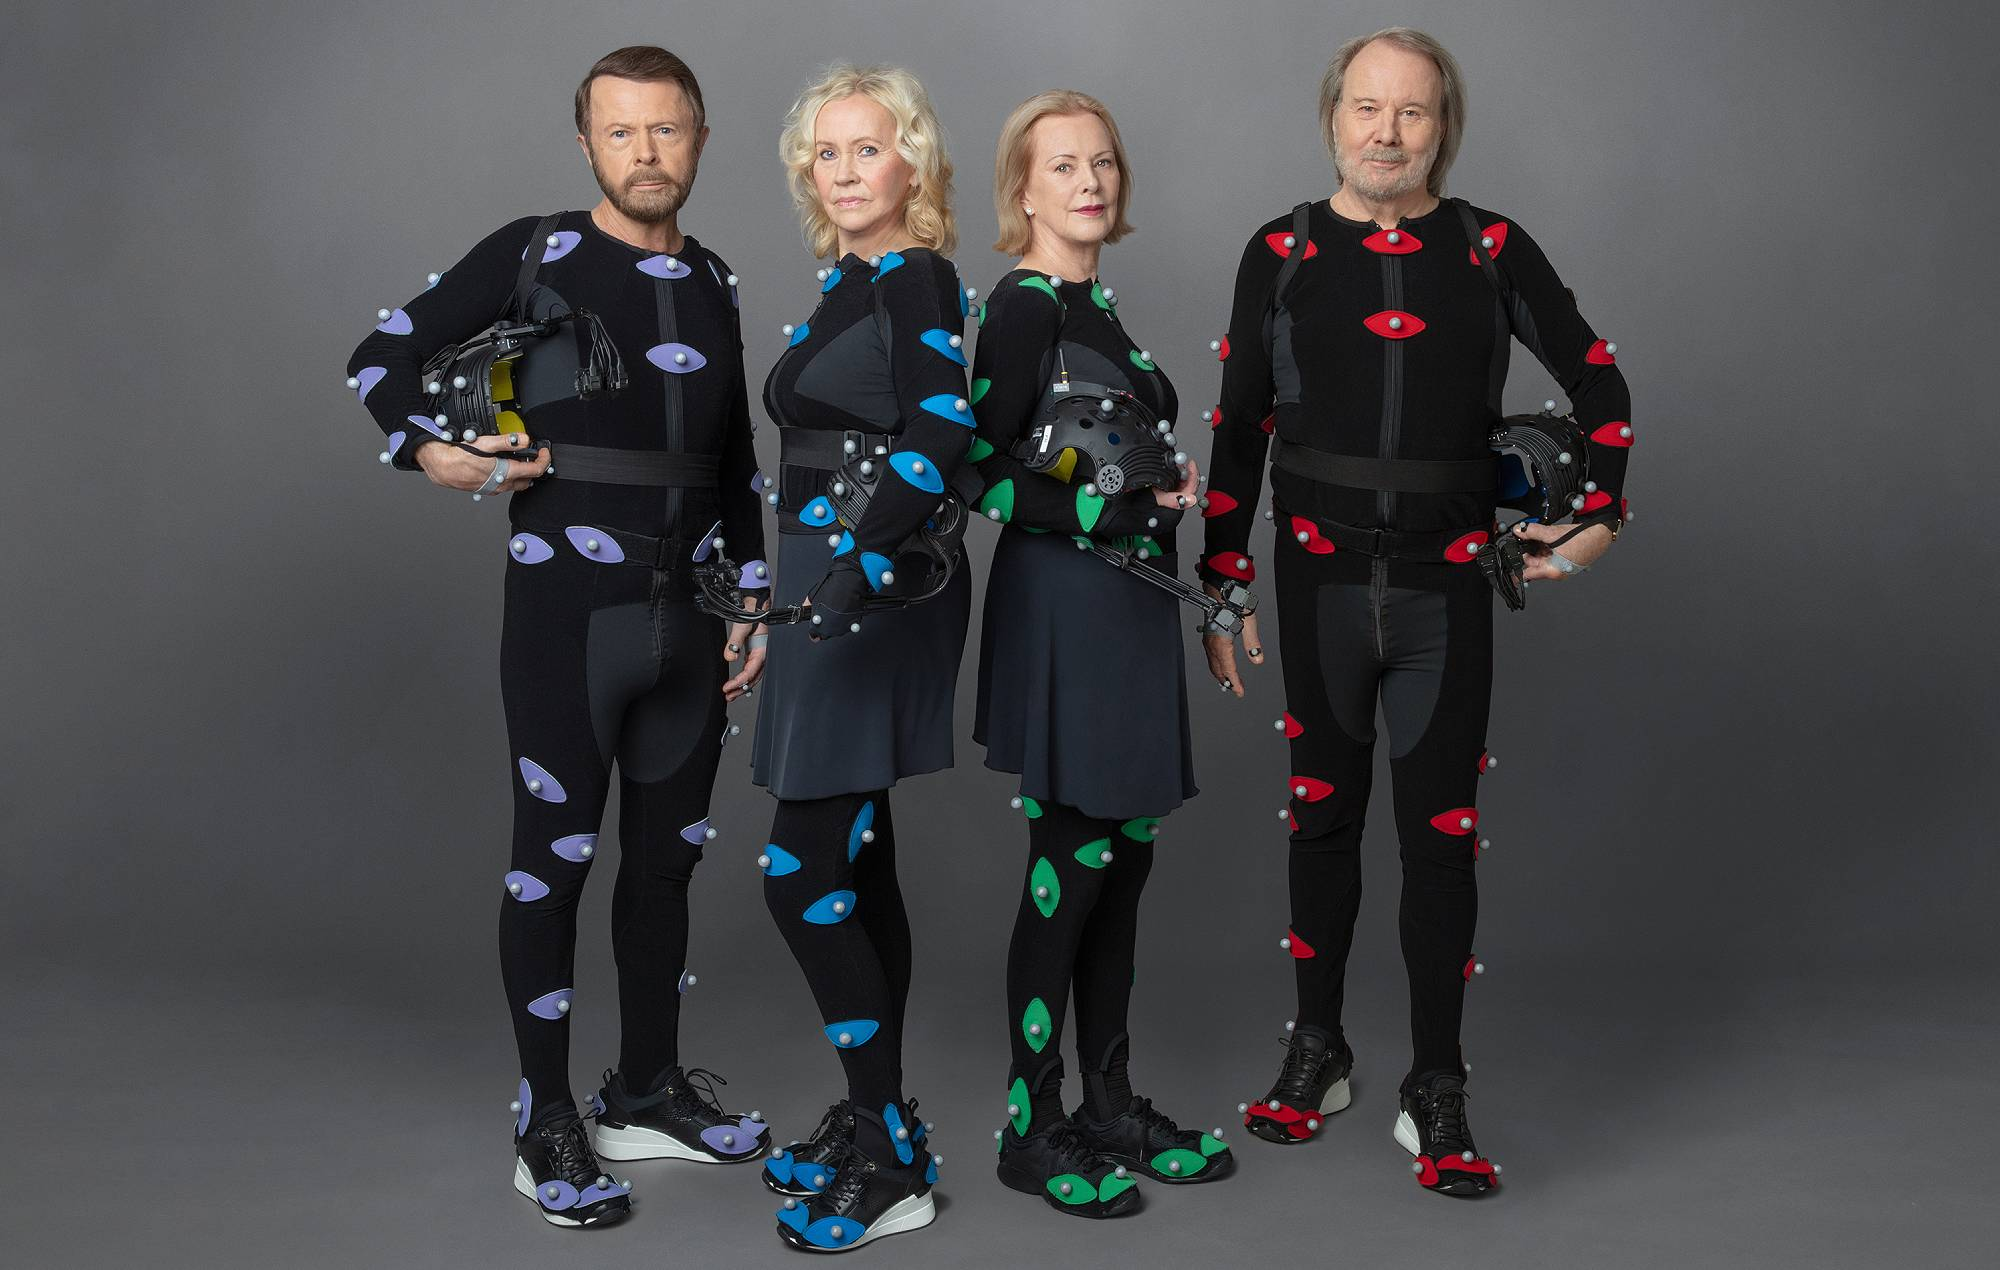 """ABBA are back with new album and """"revolutionary"""" live experience, 'ABBA: VOYAGE'. CREDIT: Press"""